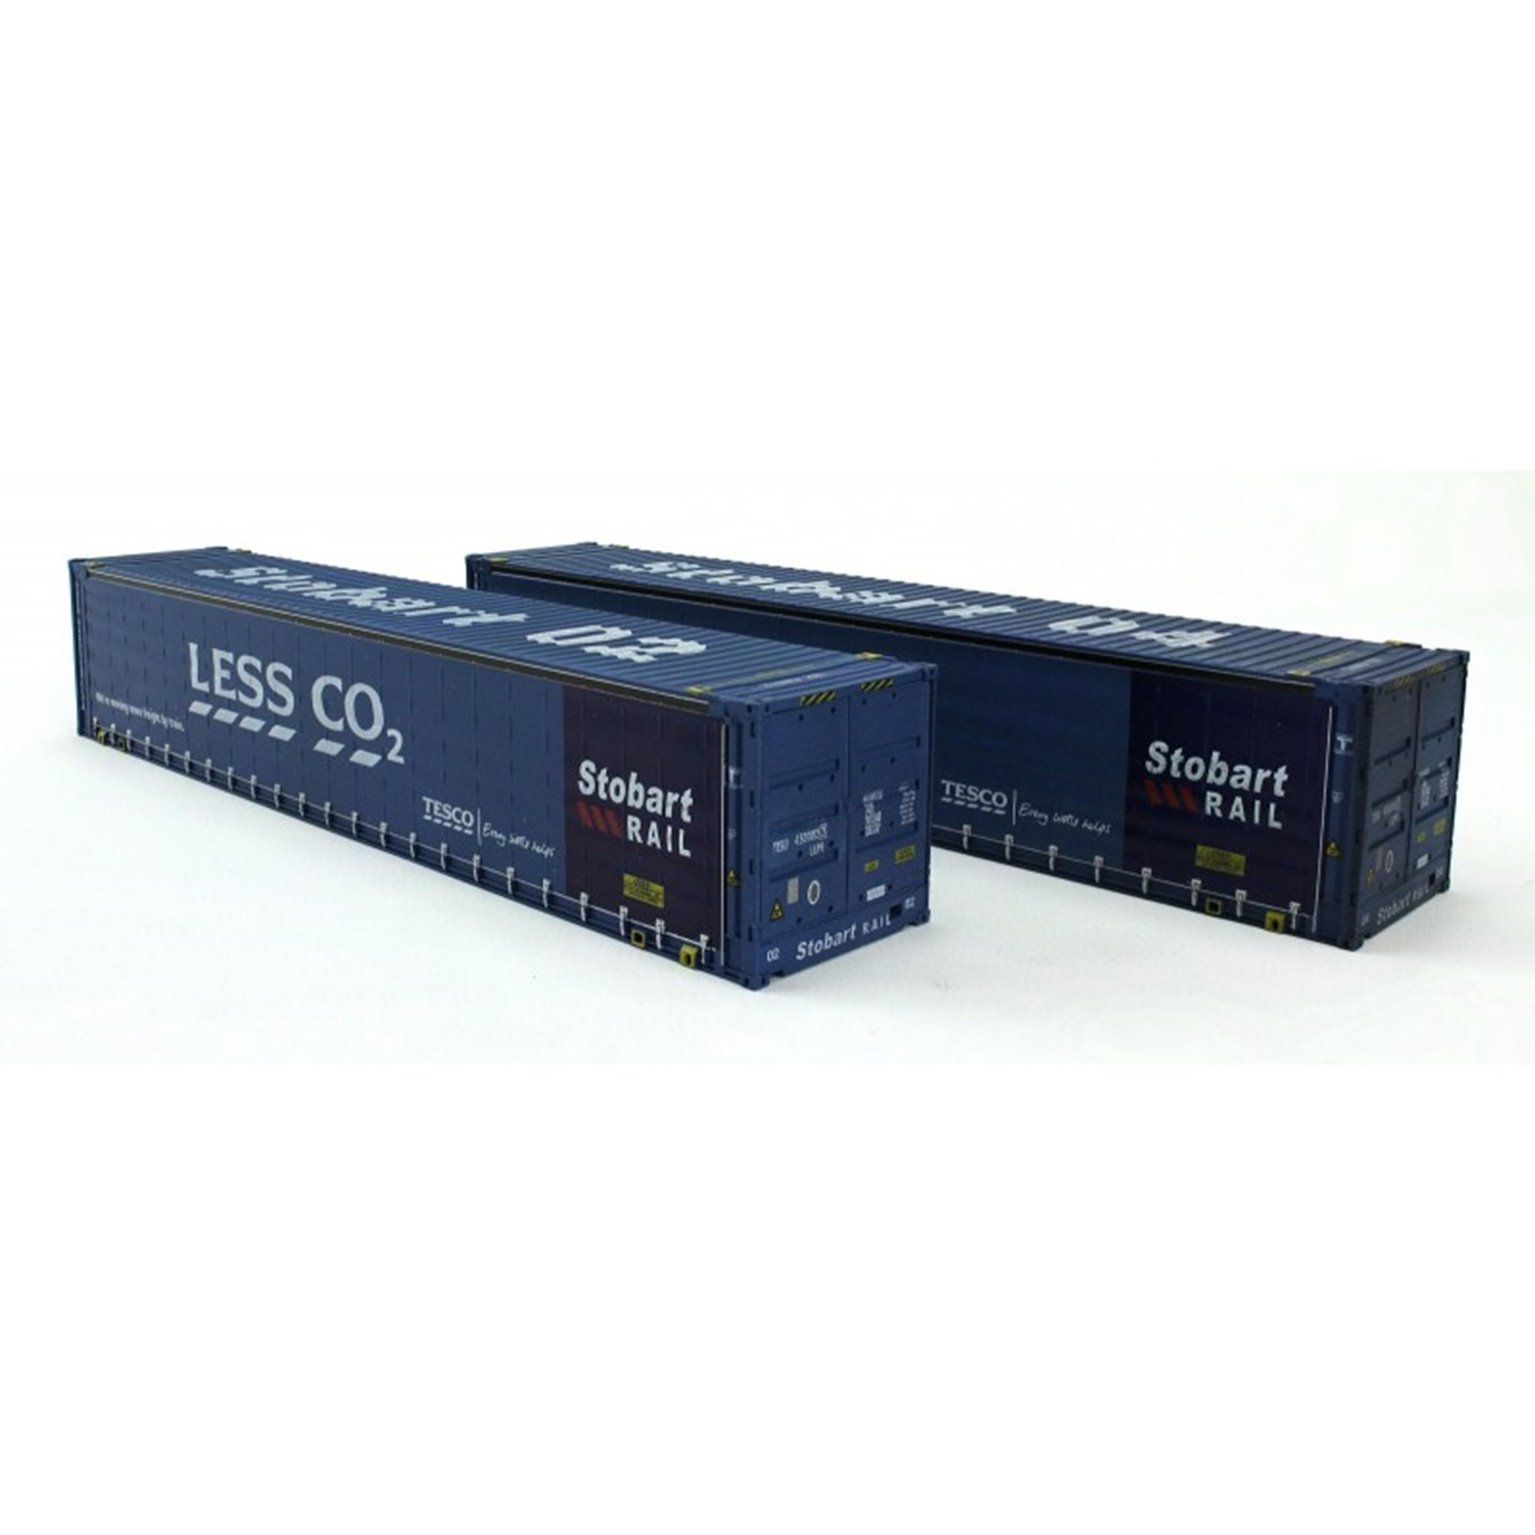 """Dapol 4F-028-006 Pack of two 45' containers """"Stobart - Less CO2"""" - weathered"""